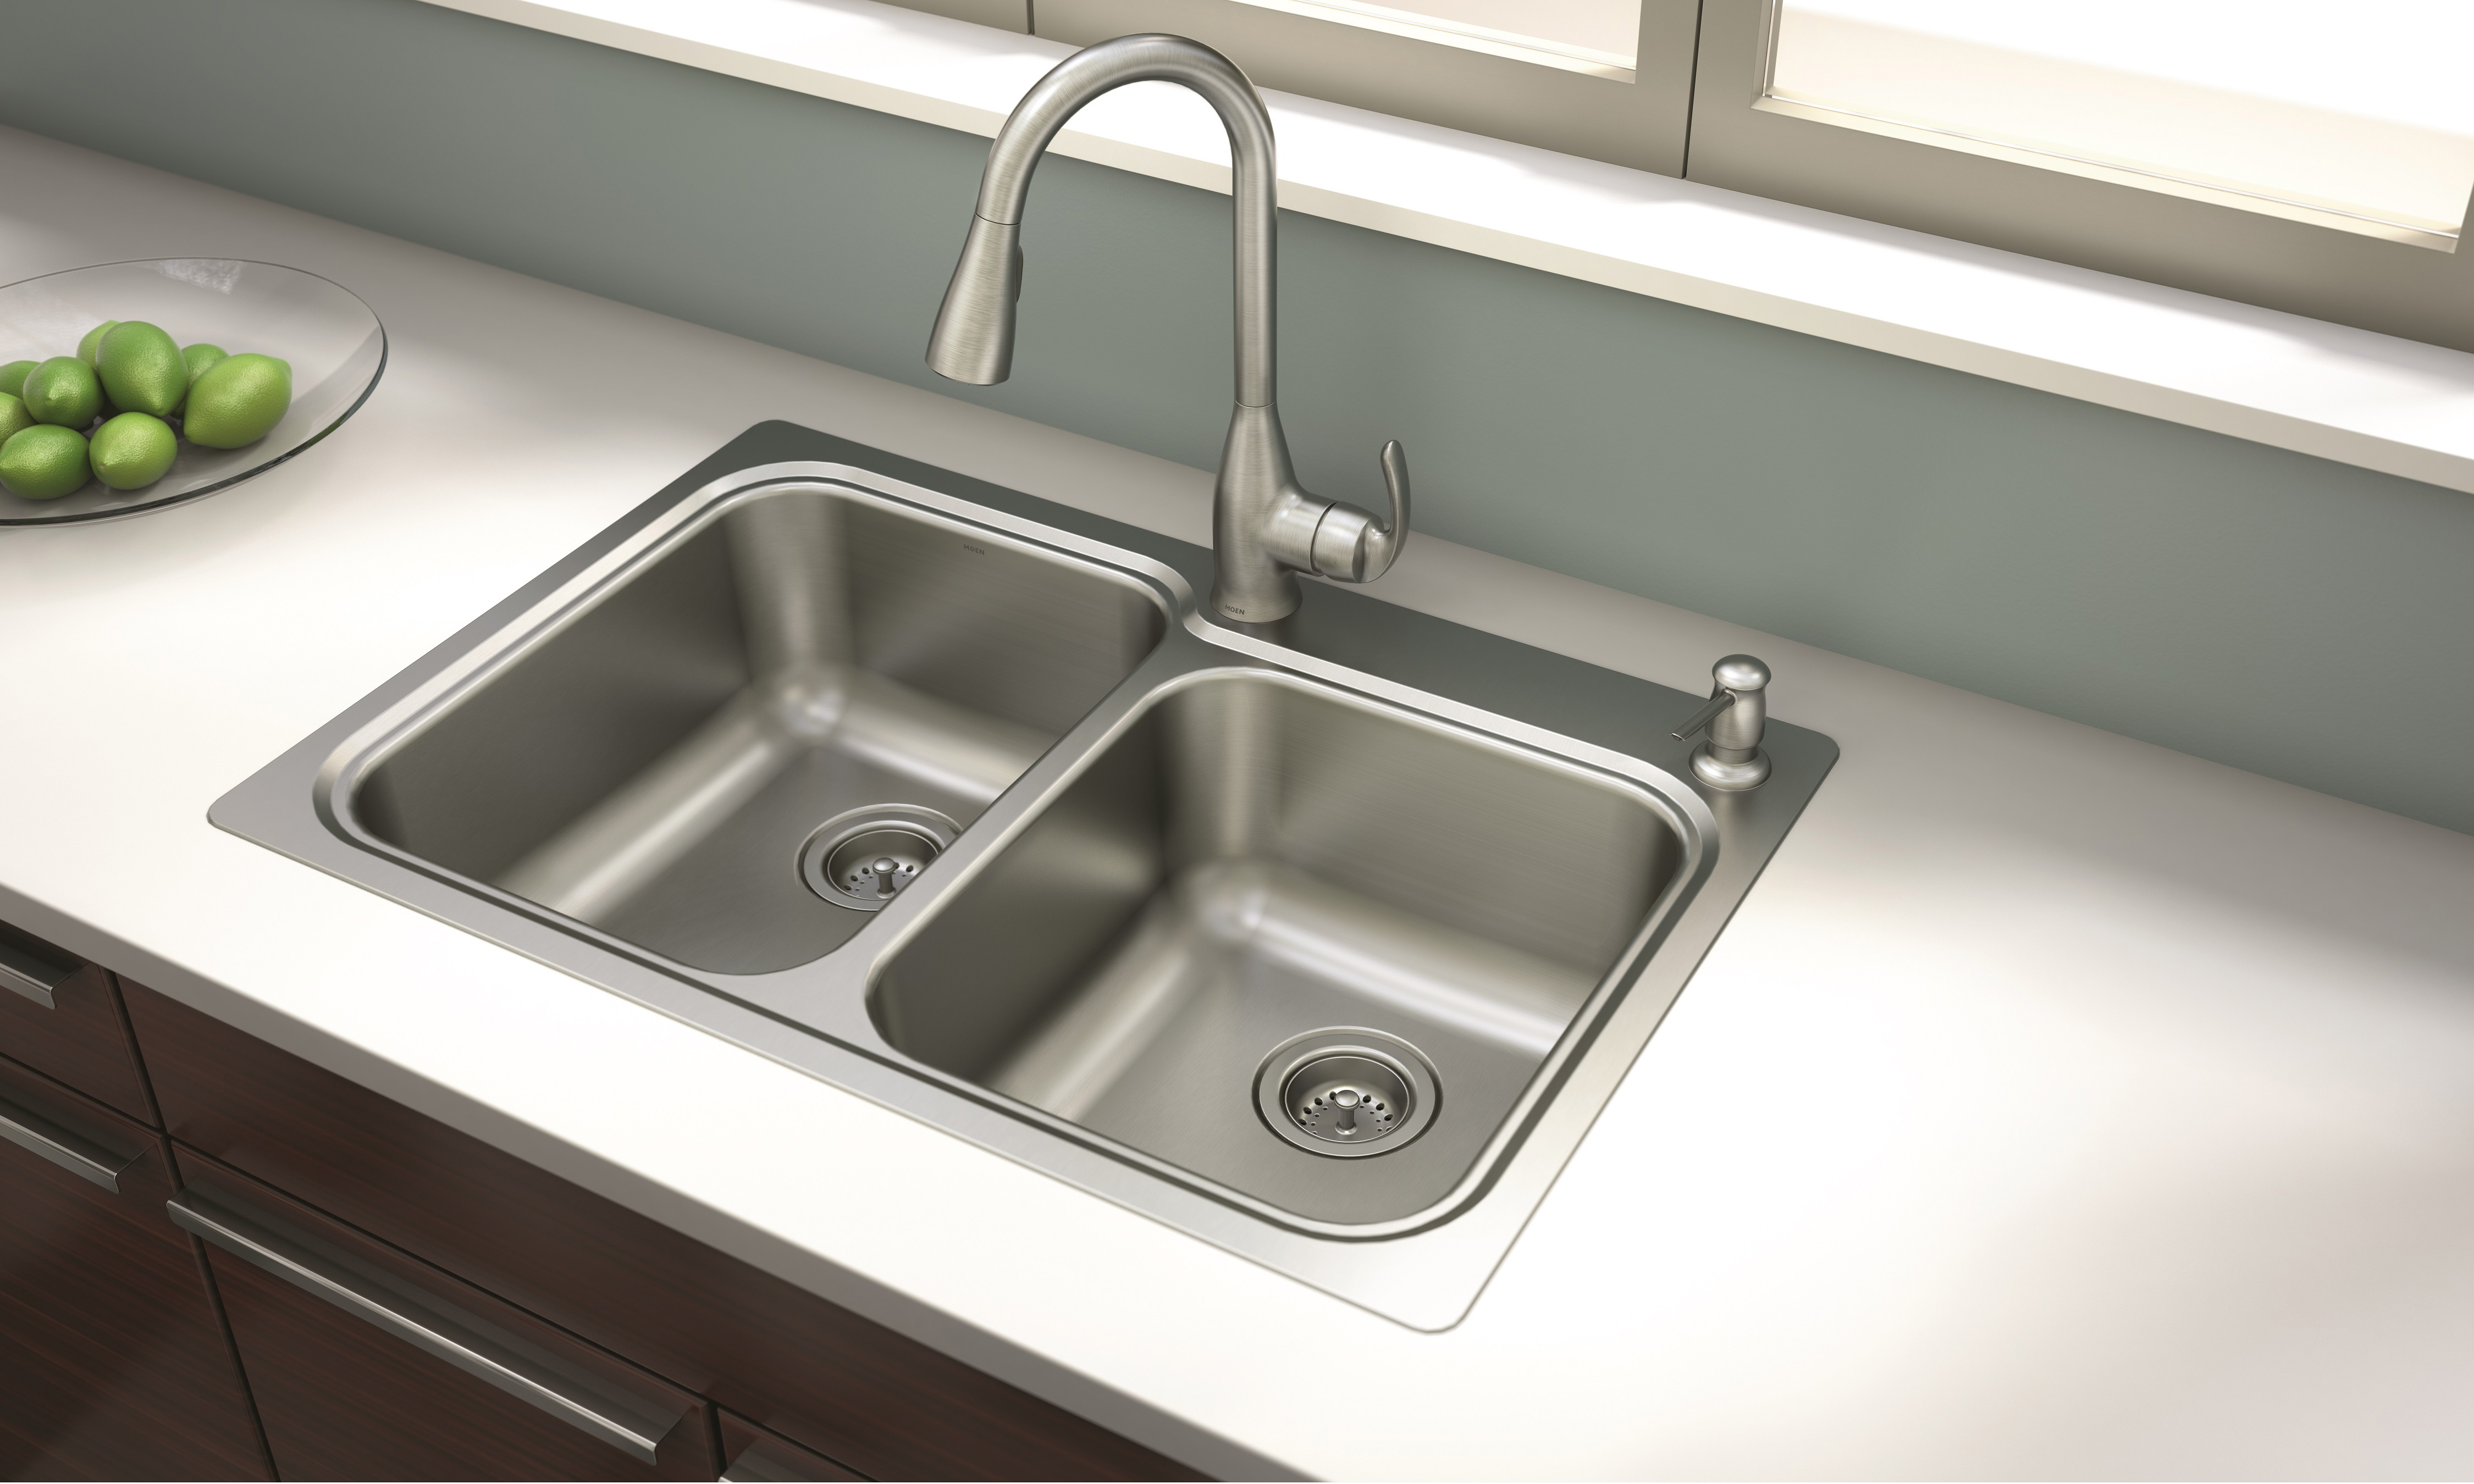 New Moen Kelsa Faucet and Sink Combination Offers